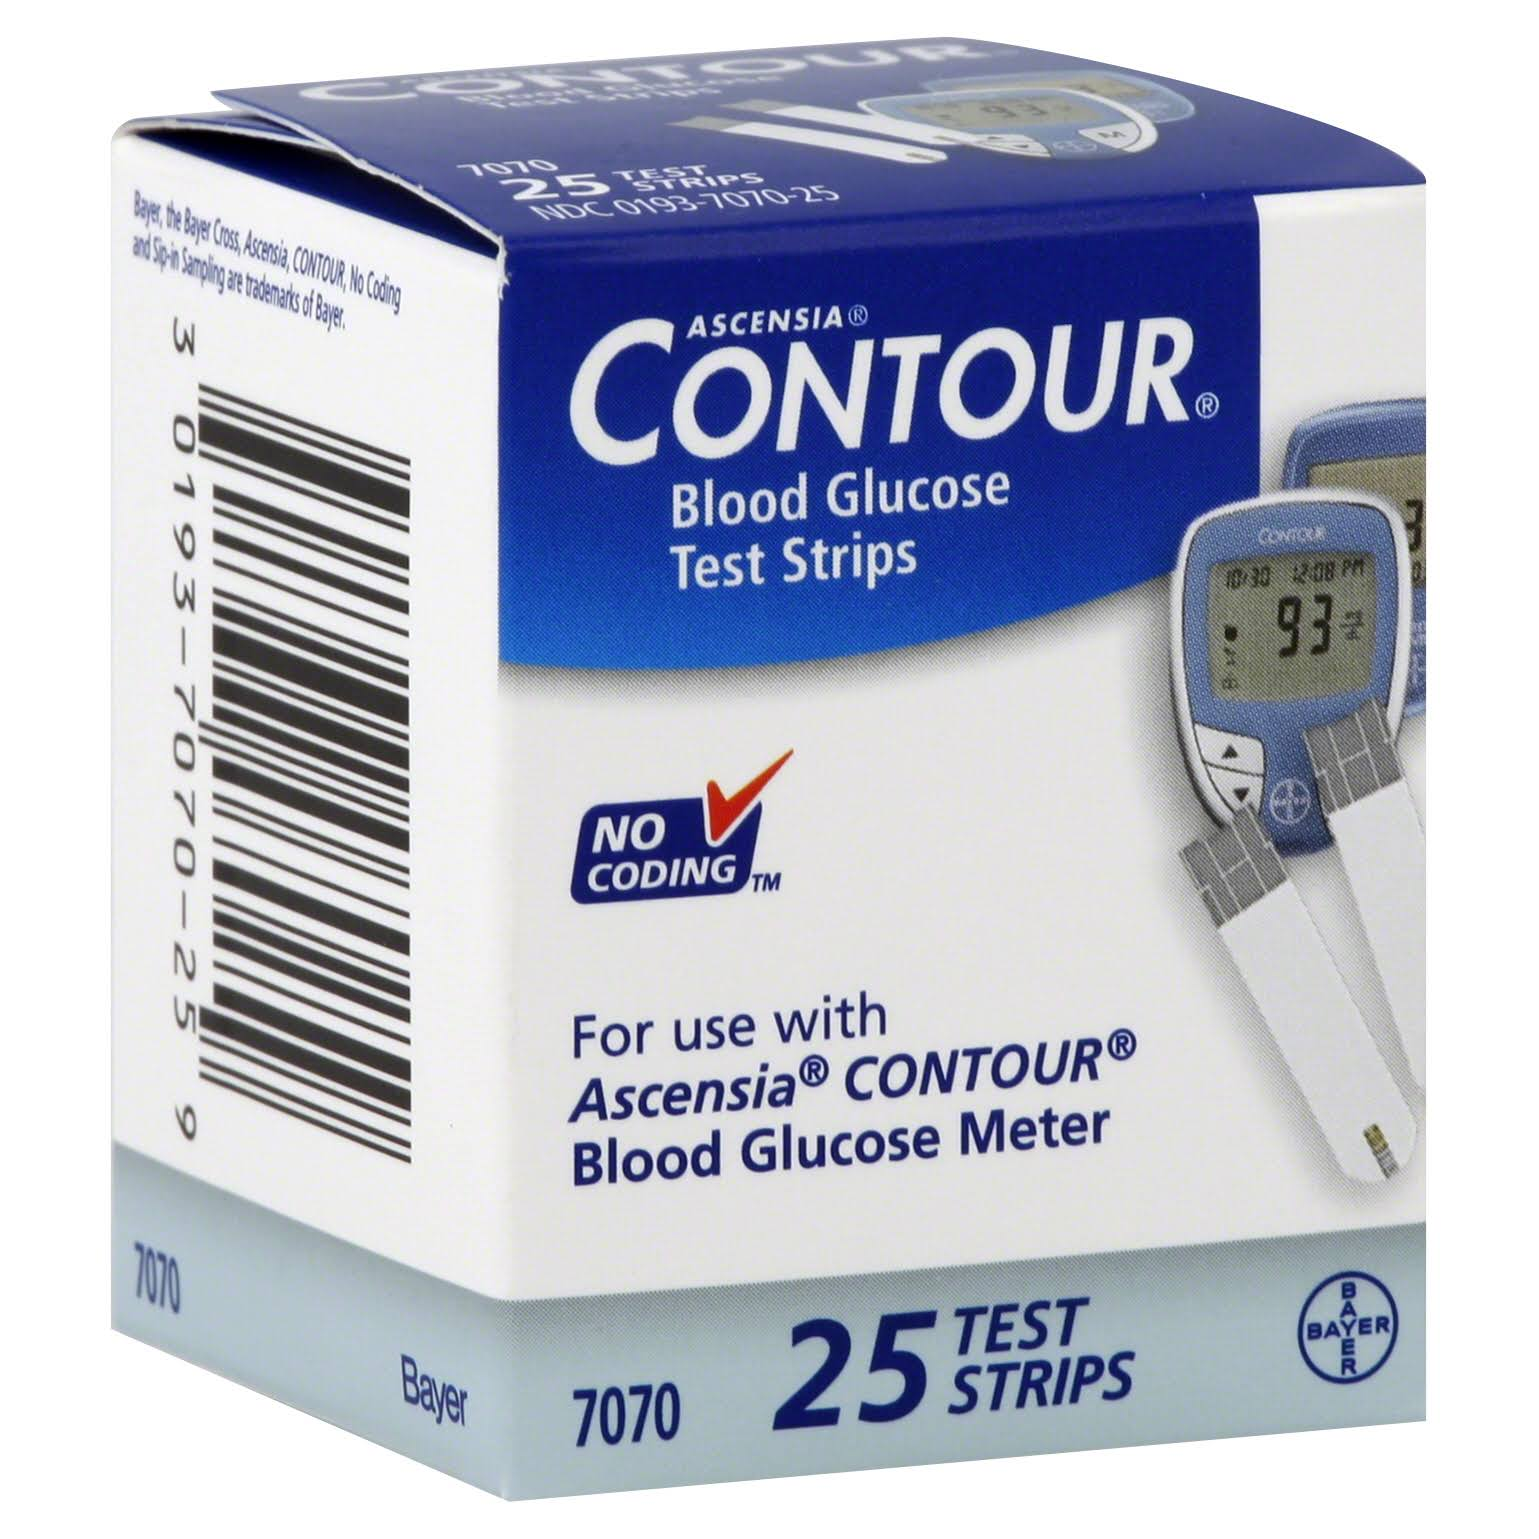 Bayer Contour Blood Glucose Test Strips - 25ct